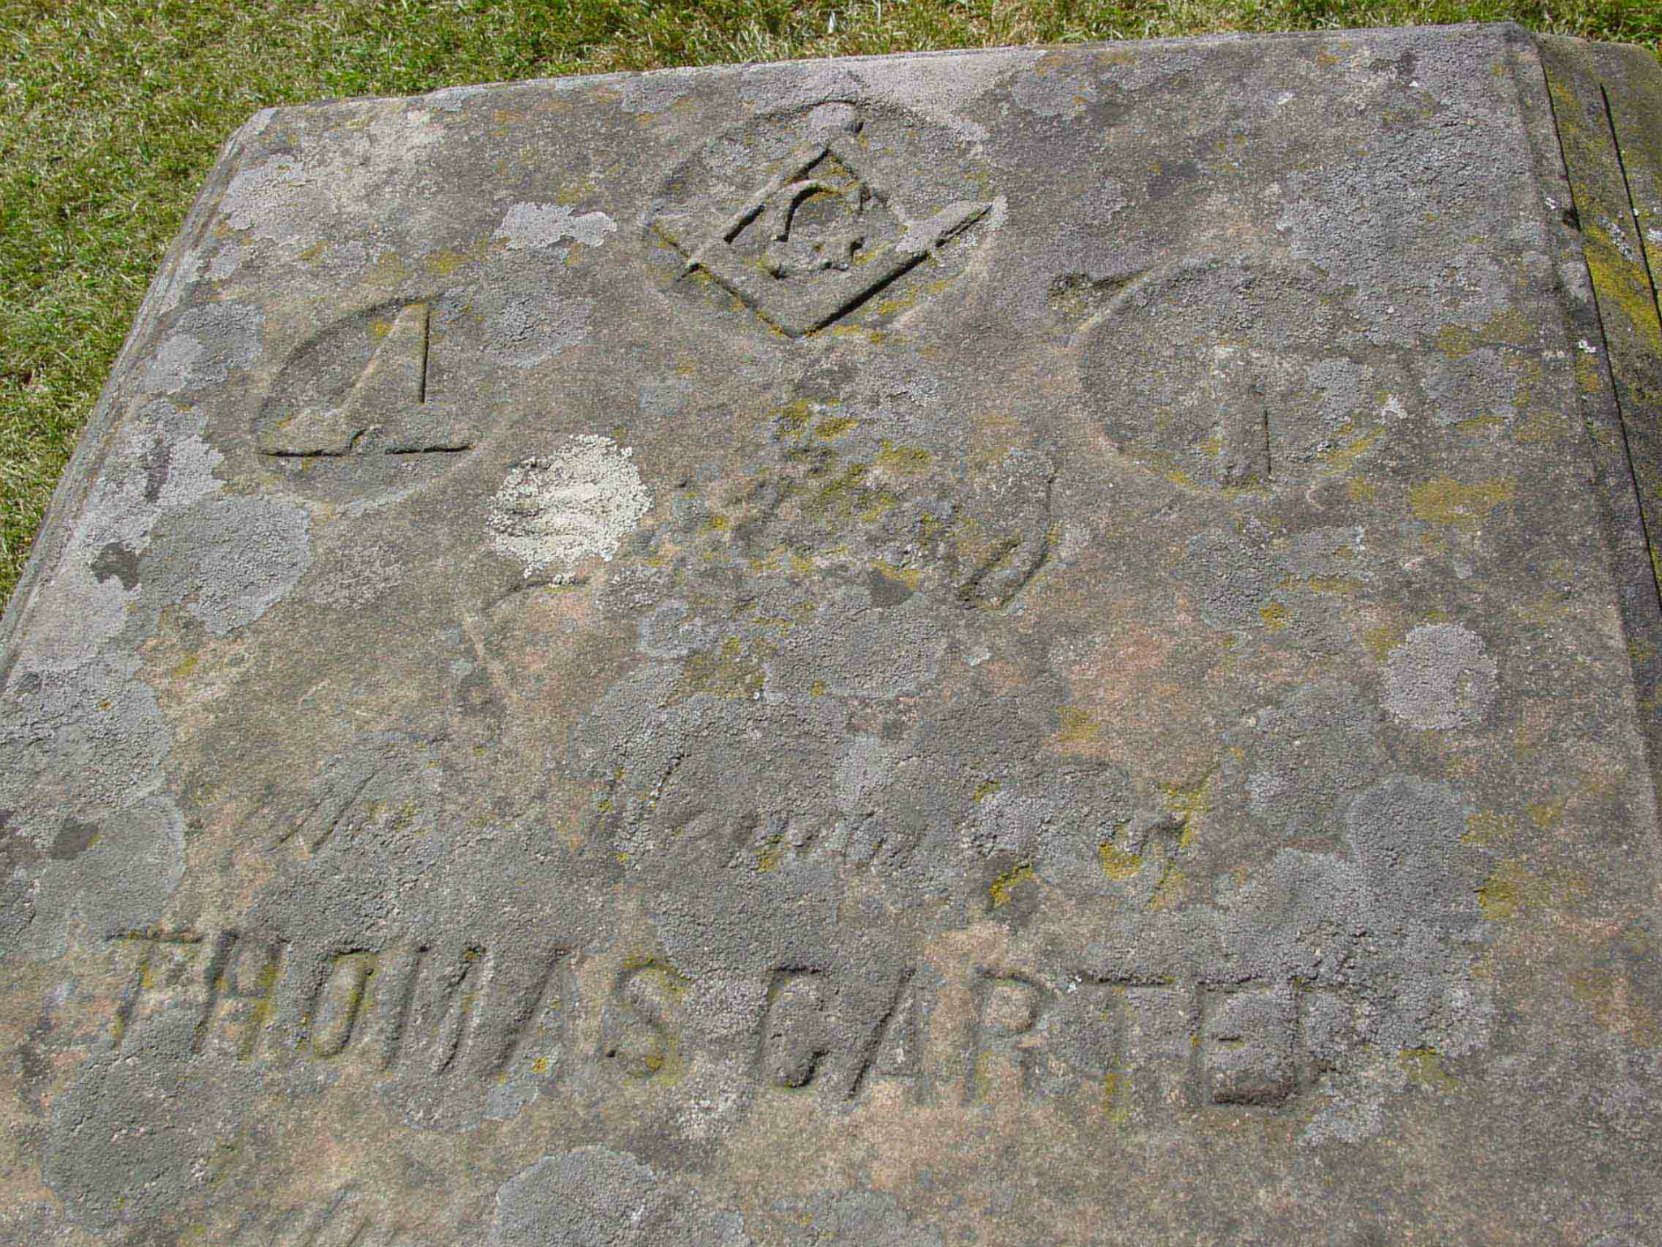 Masonic imagery, the Square & Compasses, the Level and the Plumb, on the Thomas Carter grave marker, Pioneer Square, Victoria, B.C.